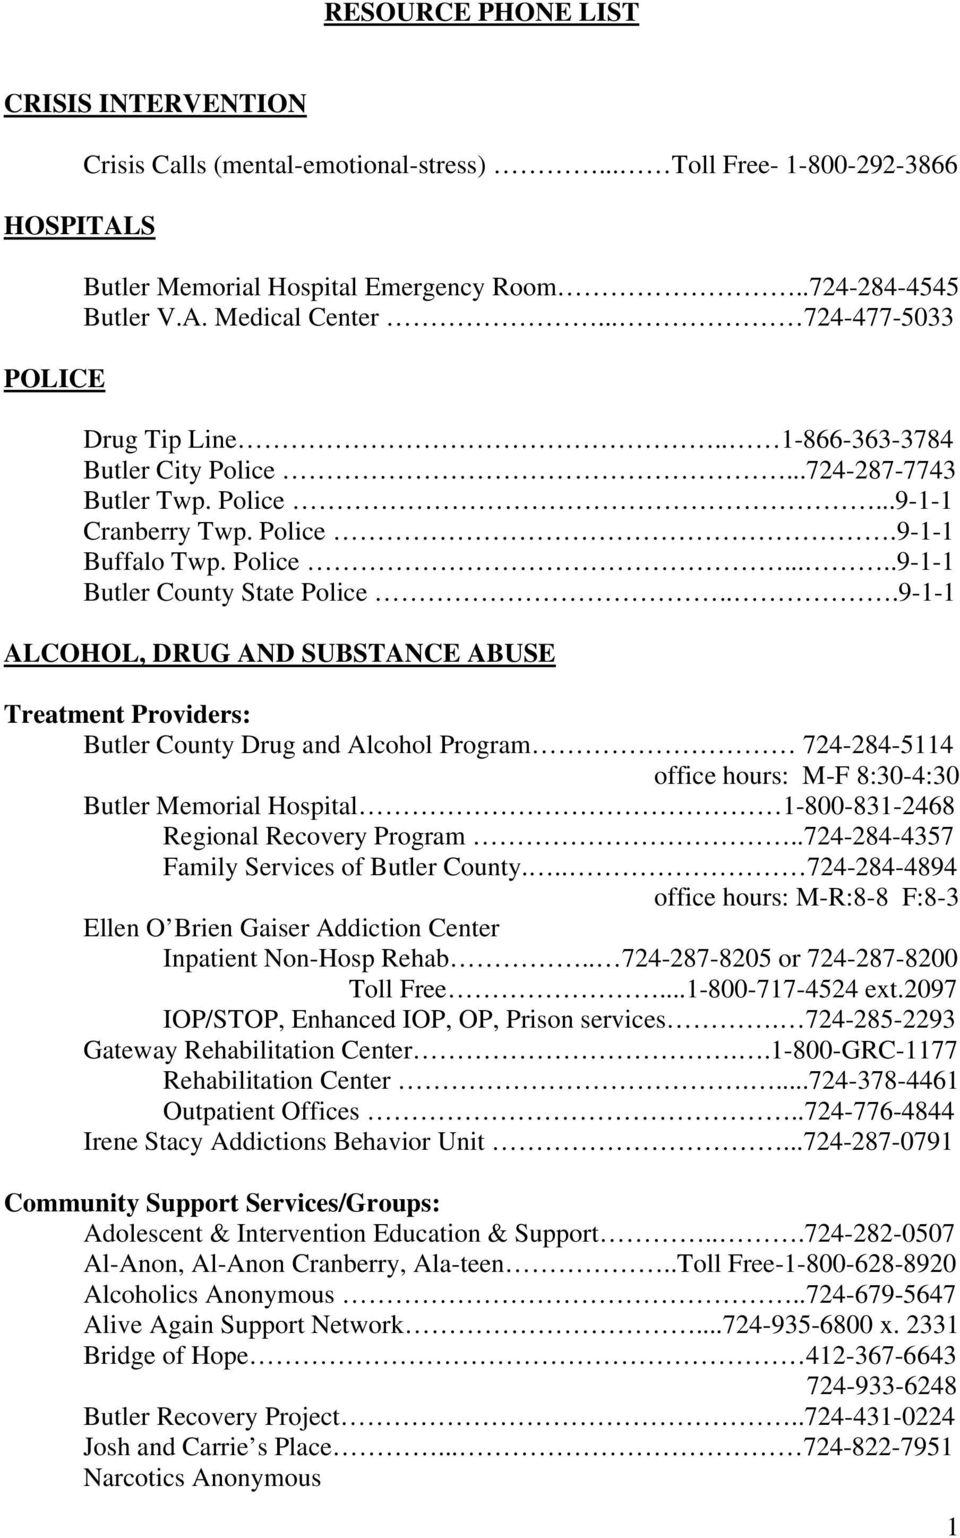 ..9-1-1 ALCOHOL, DRUG AND SUBSTANCE ABUSE Treatment Providers: Butler County Drug and Alcohol Program 724-284-5114 office hours: M-F 8:30-4:30 Butler Memorial Hospital 1-800-831-2468 Regional